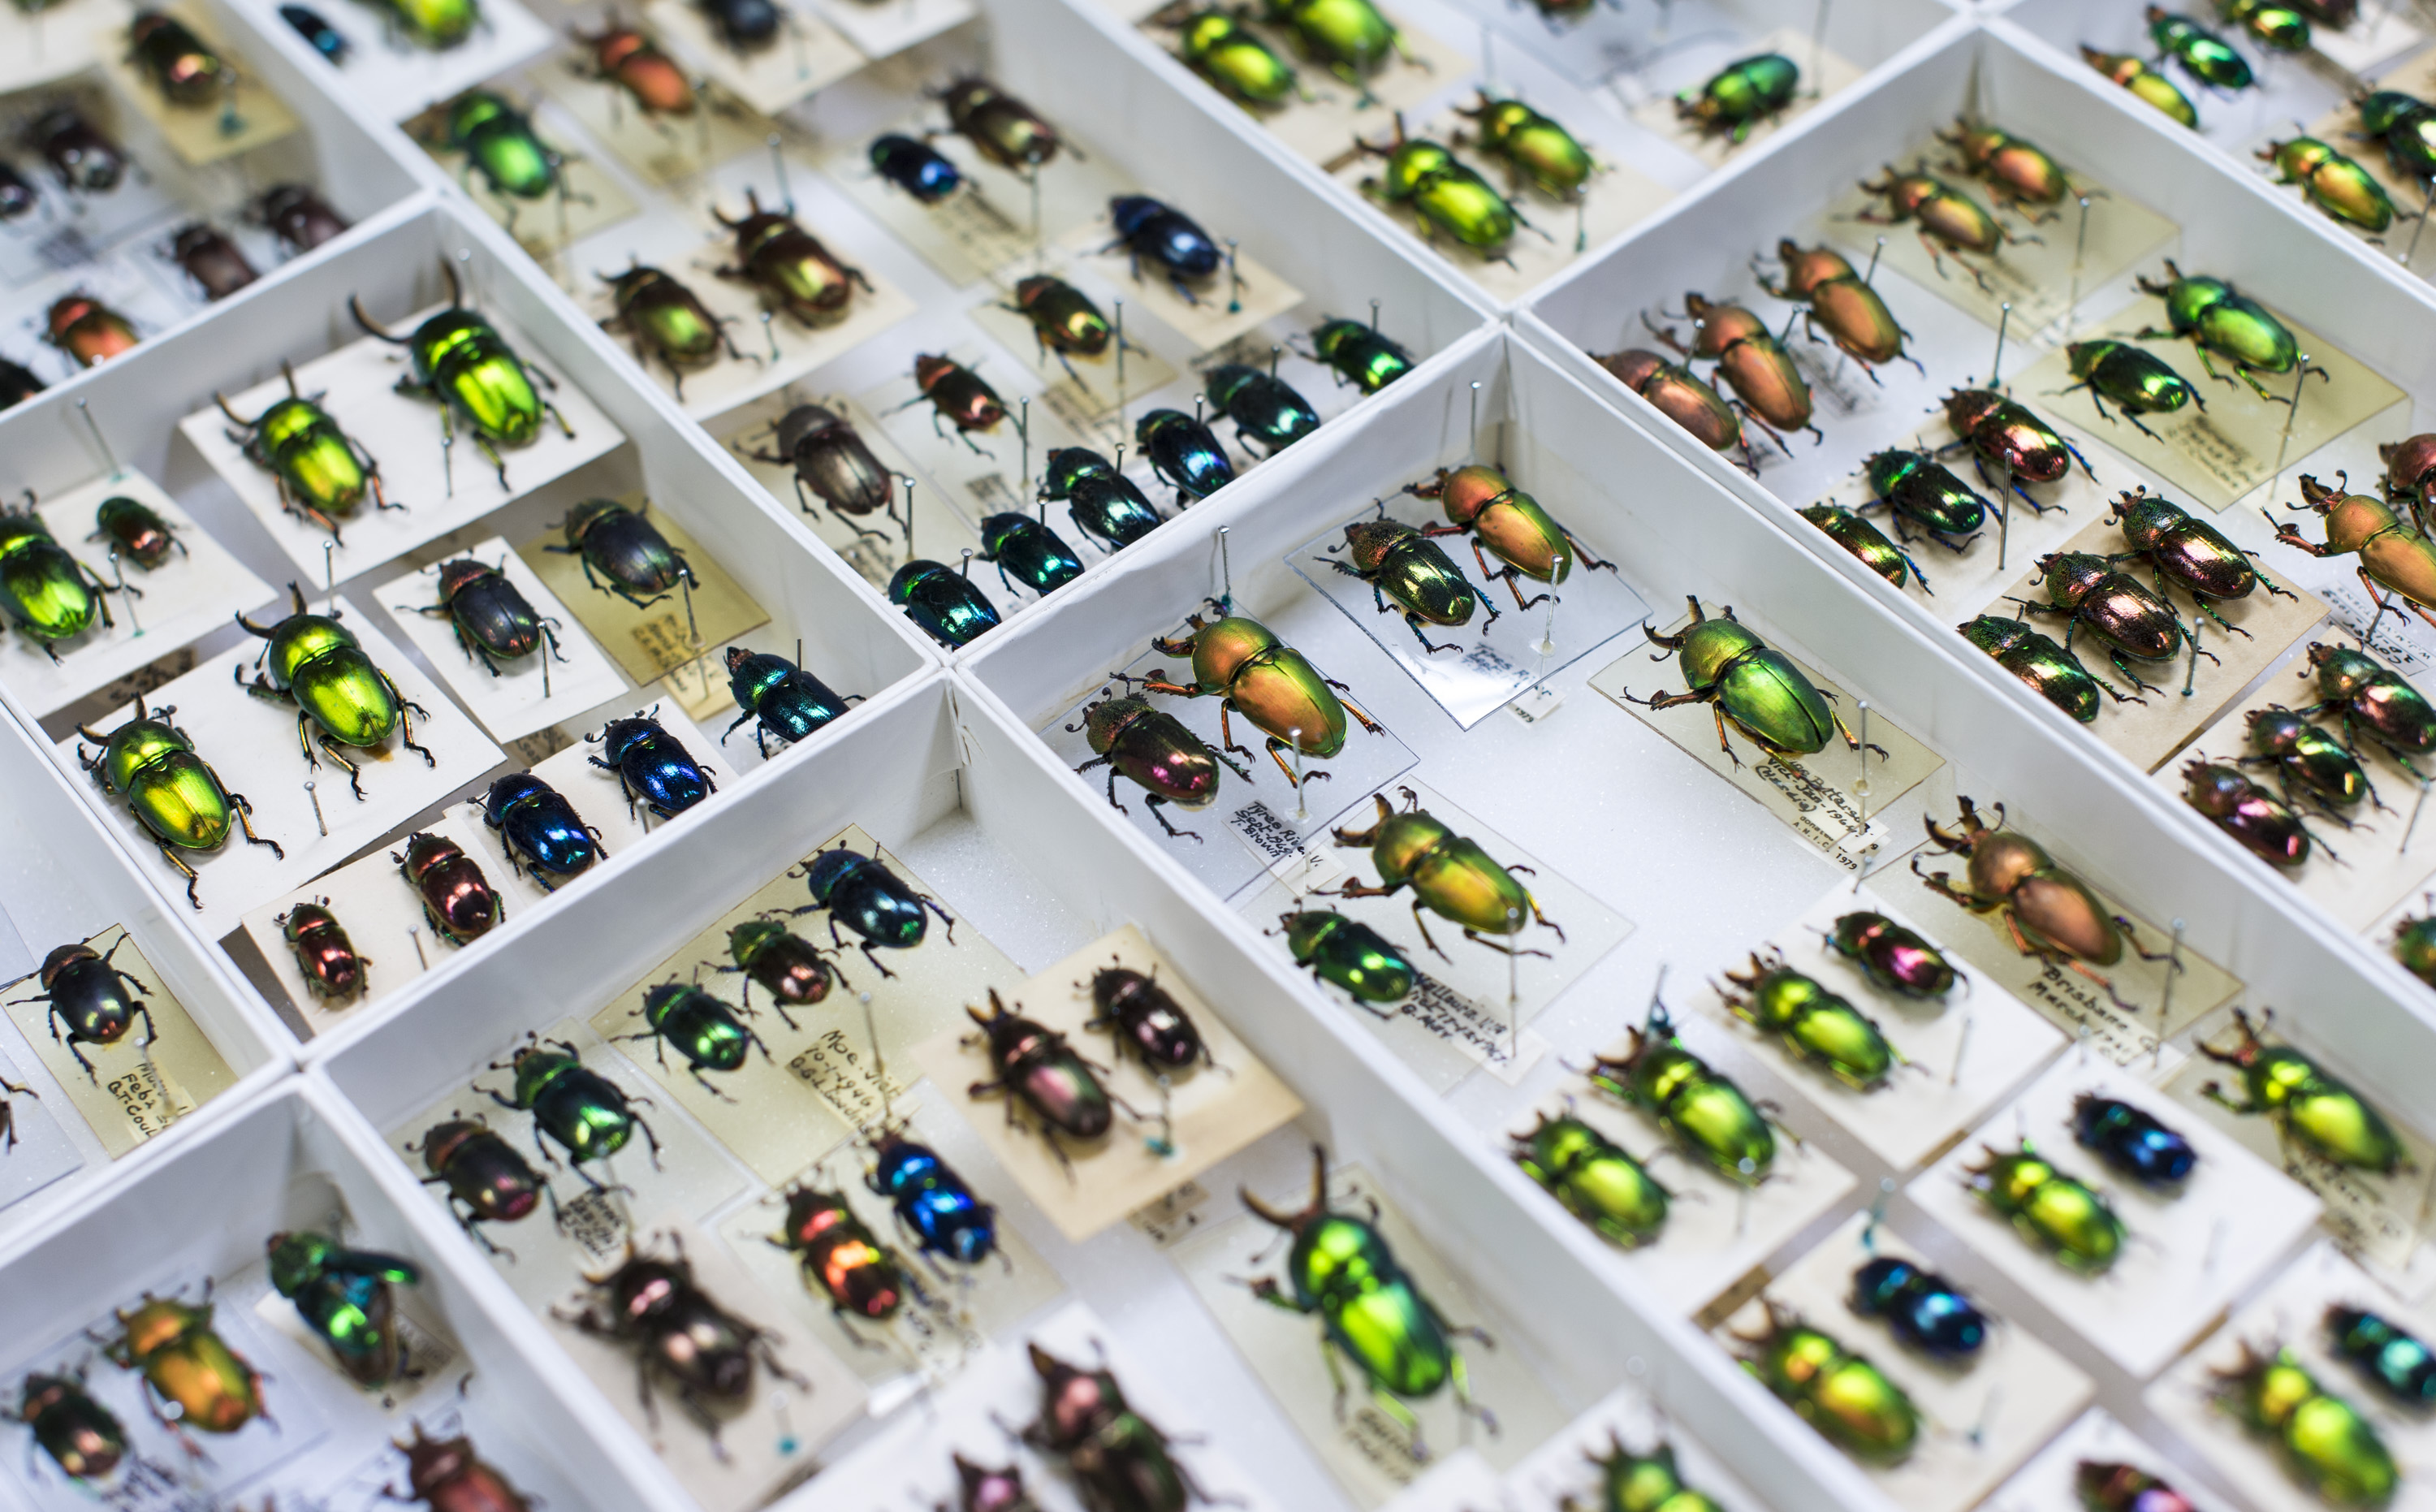 Specimen trays containing pinned beetles.